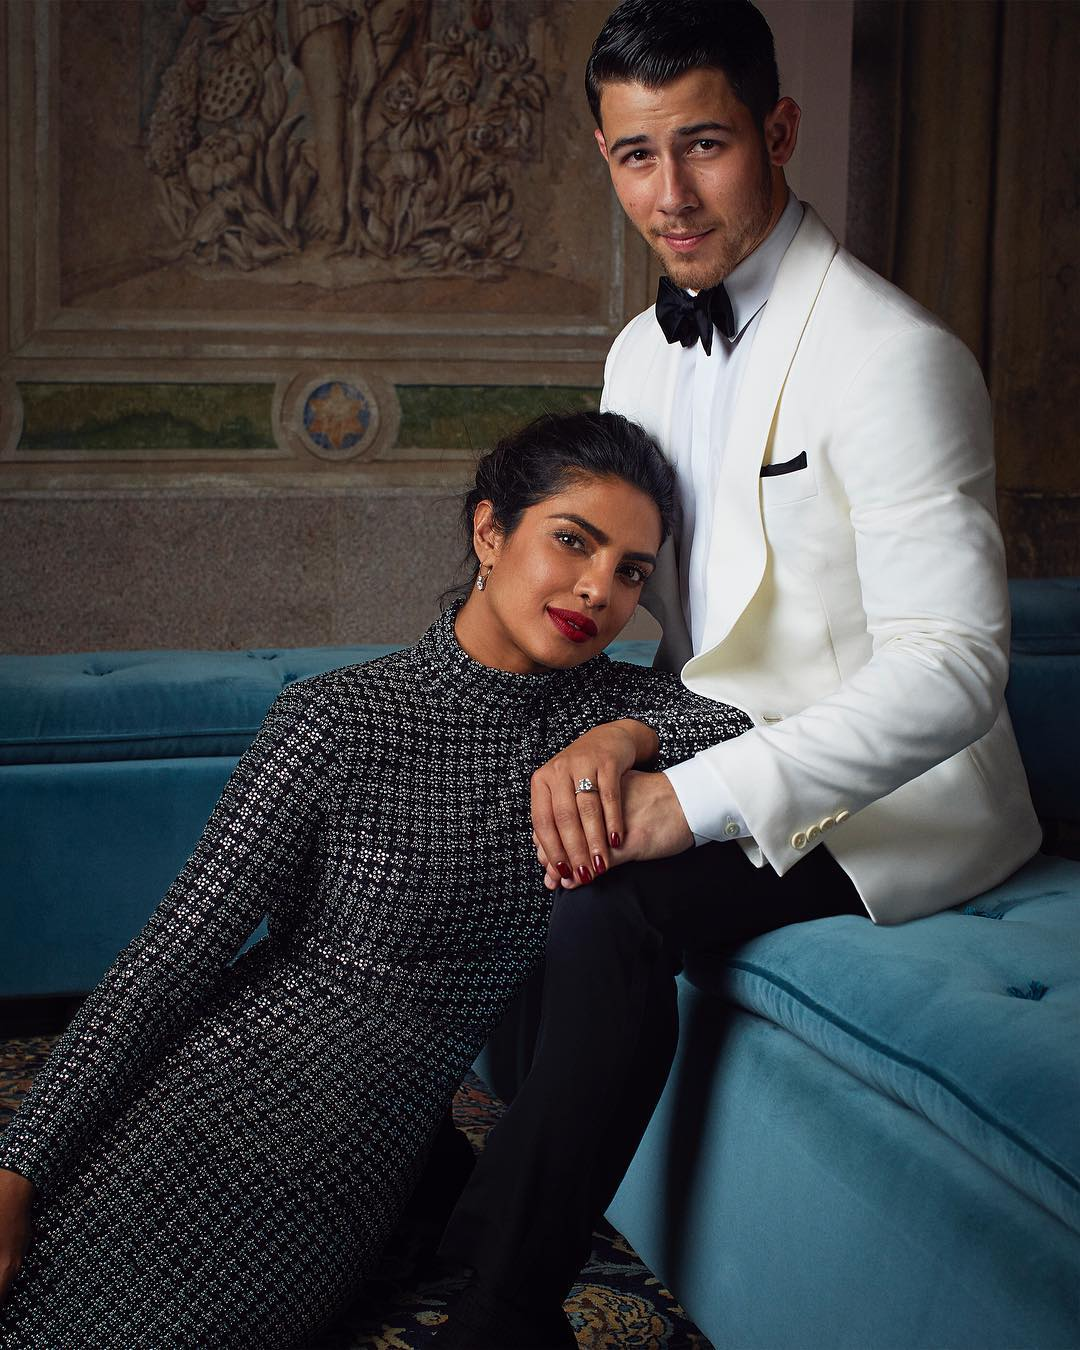 We These Photos Of Newly Engaged Couple Priyanka Chopra